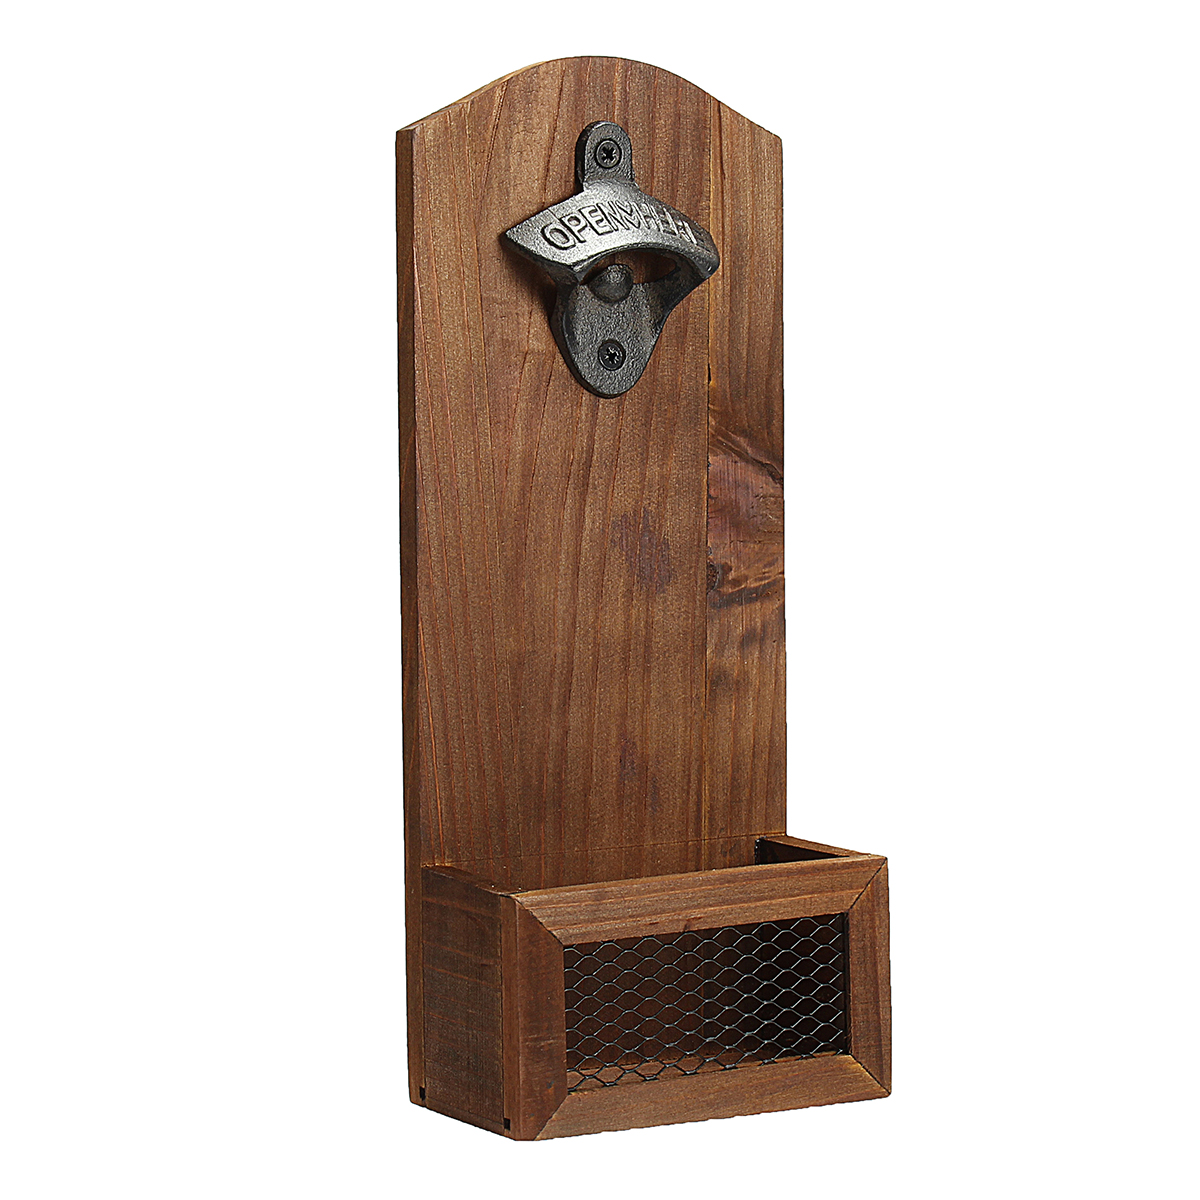 Wall Mounted Beer Opener And Catcher Beer Bottle Opener Drink Cap Catcher Wooden Iron Wall